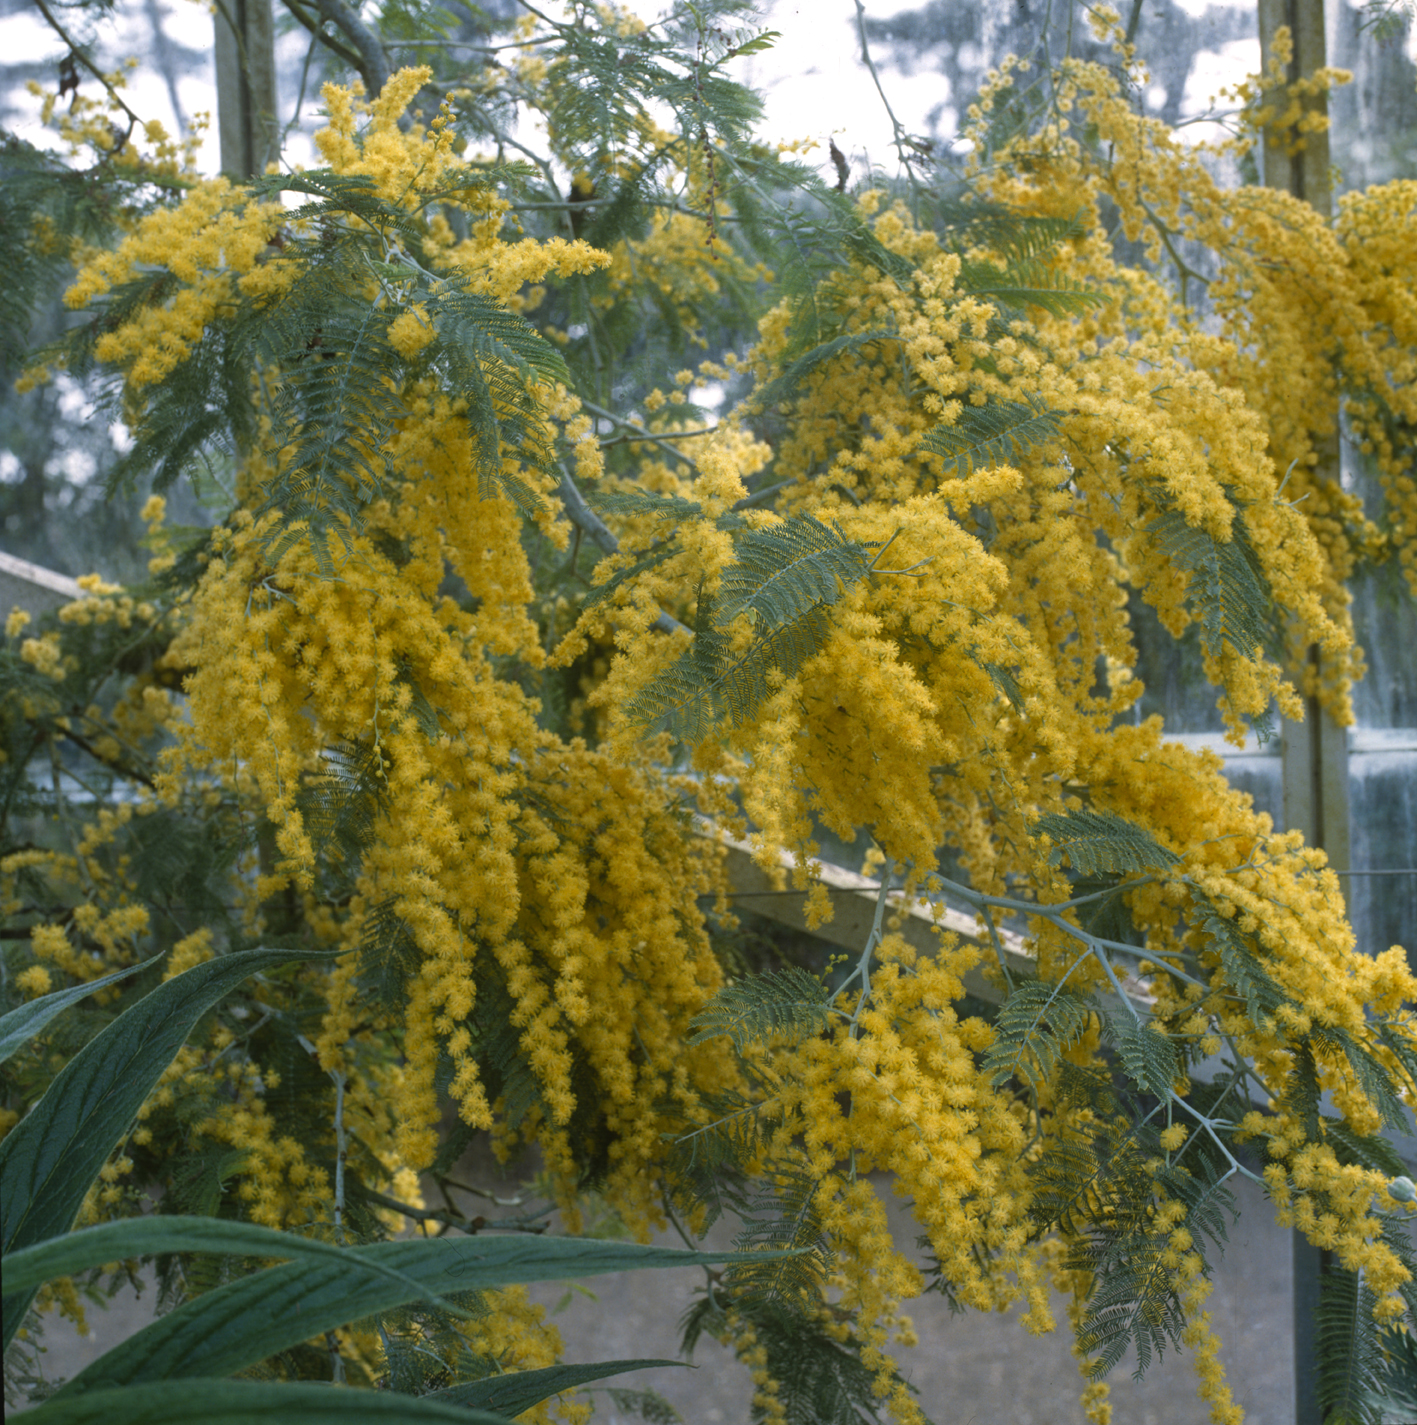 How to grow acacia mimosa amateur gardening acacia baileyana mightylinksfo Image collections